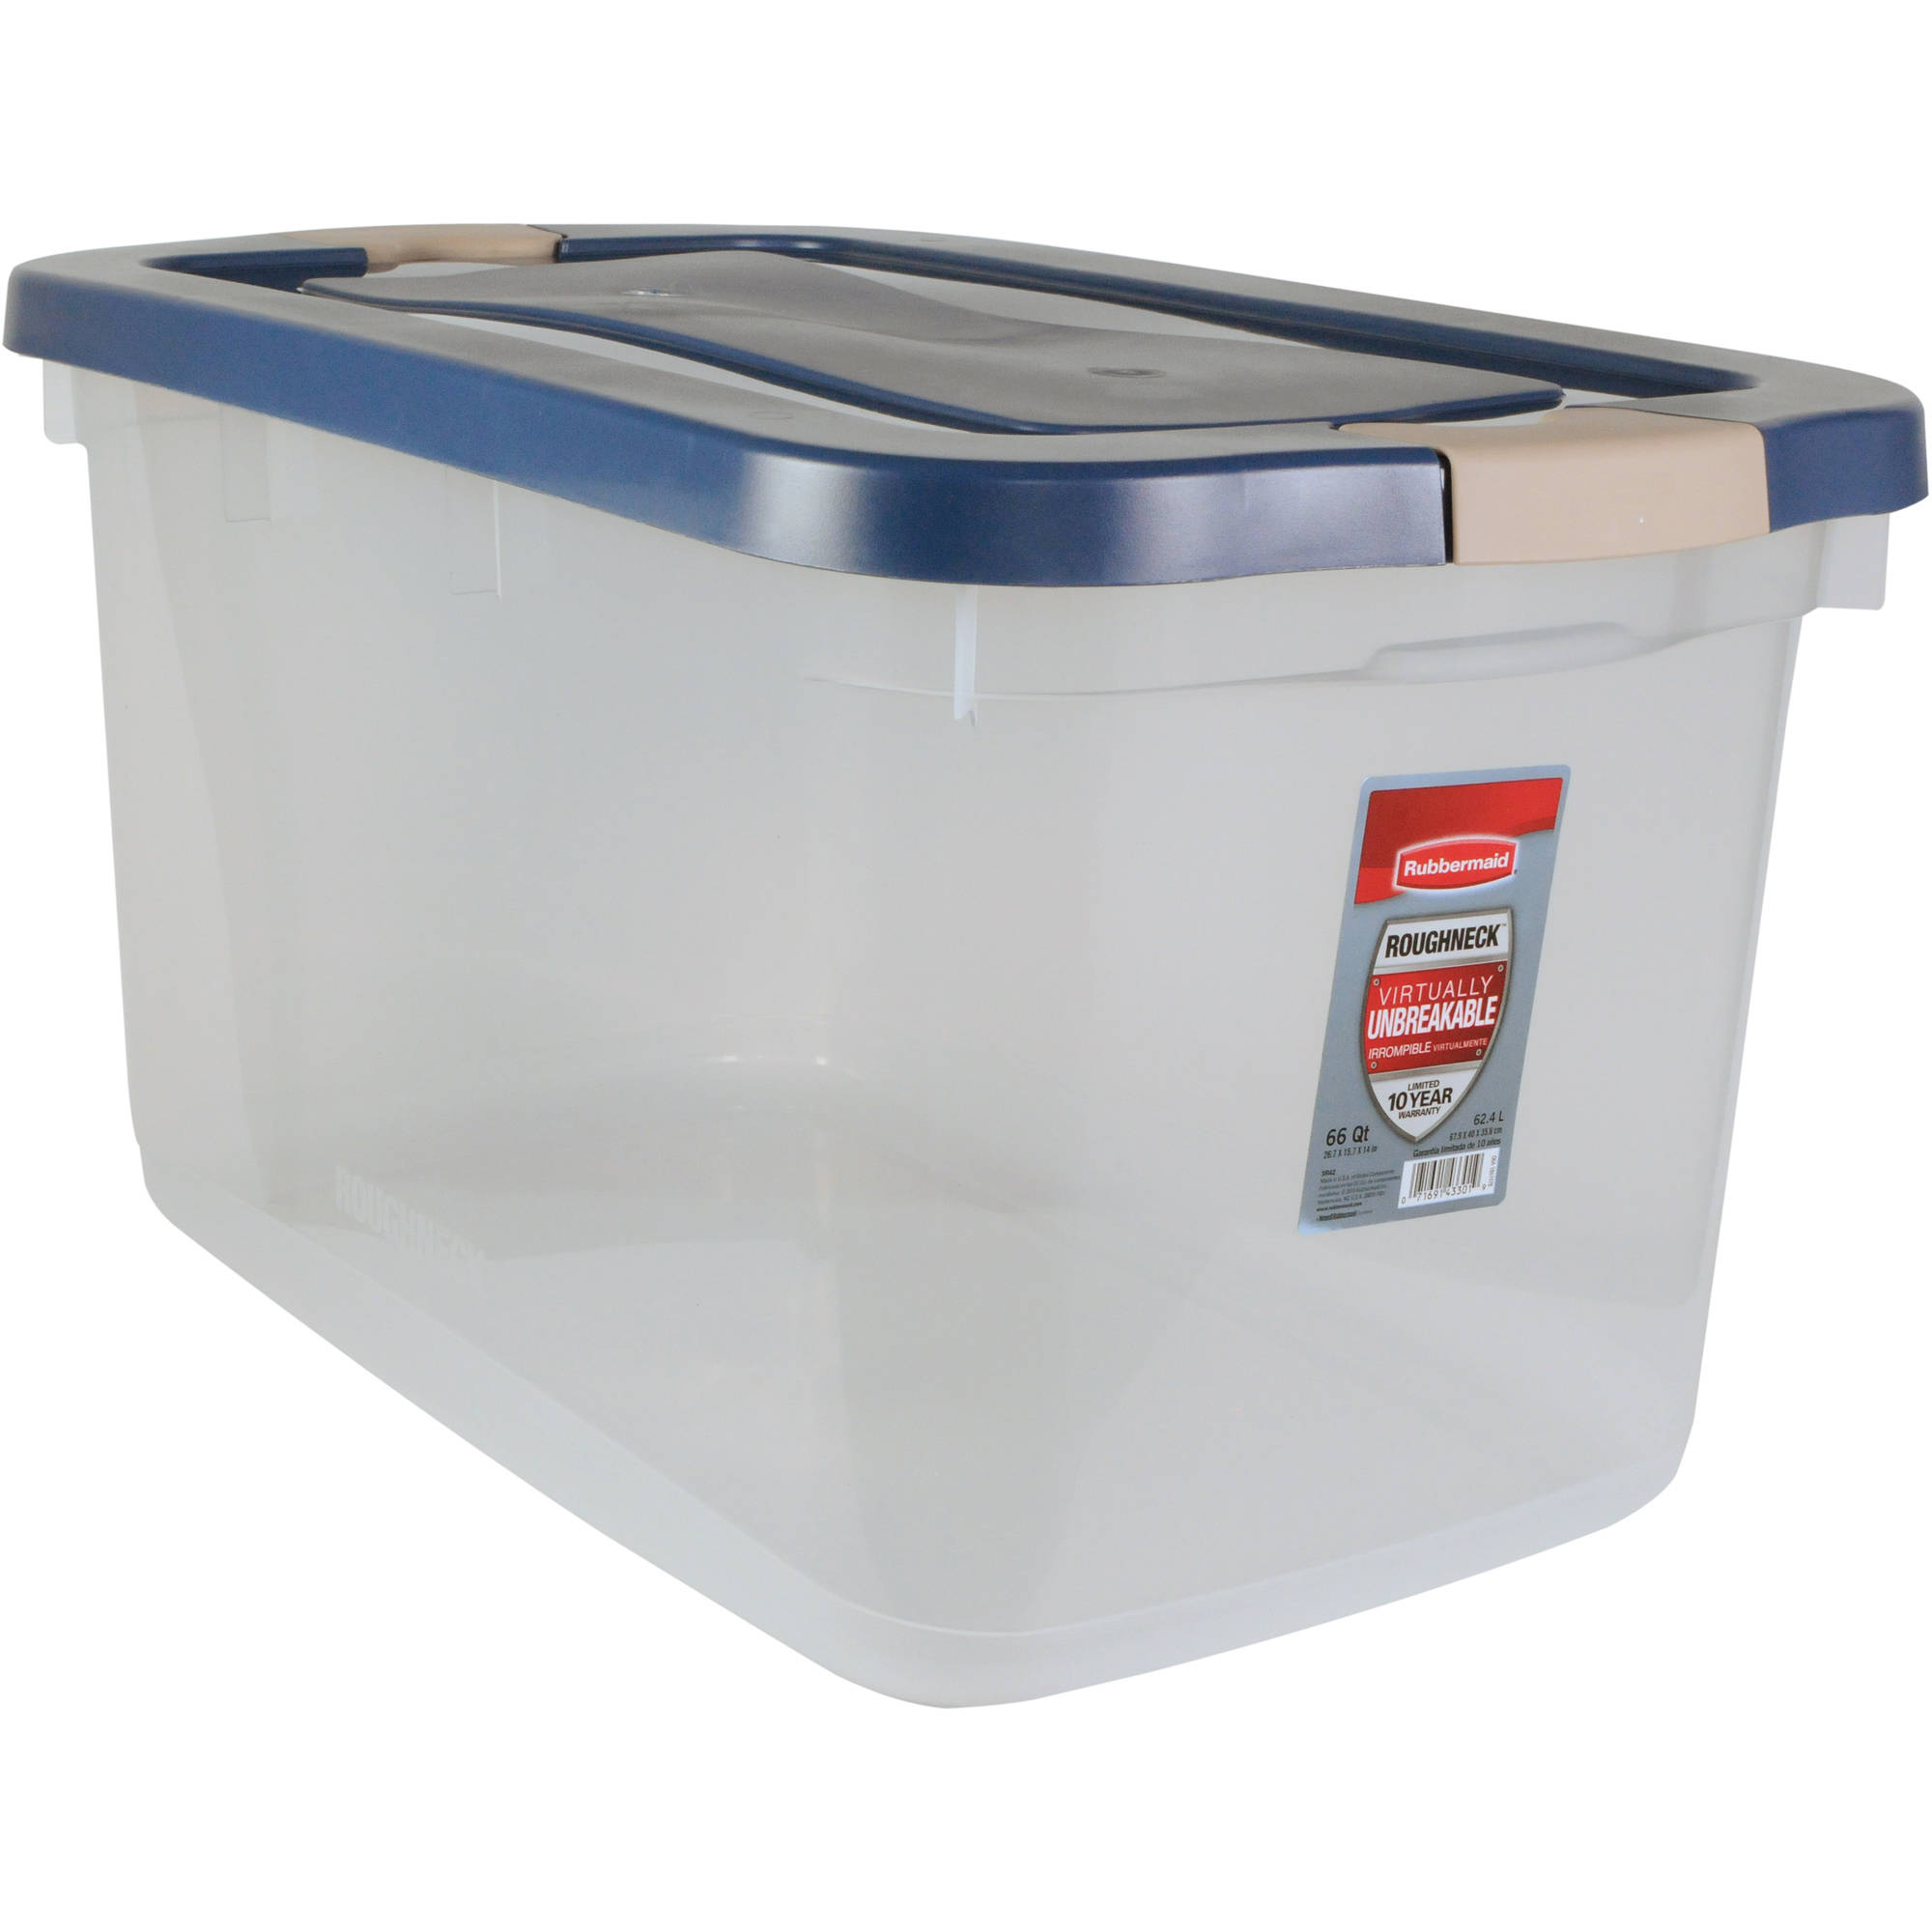 Ordinaire Rubbermaid Roughneck 66 Qt. (16.5 Gal) Clear Storage Tote Bin, Clear With  Blue Lid   Walmart.com